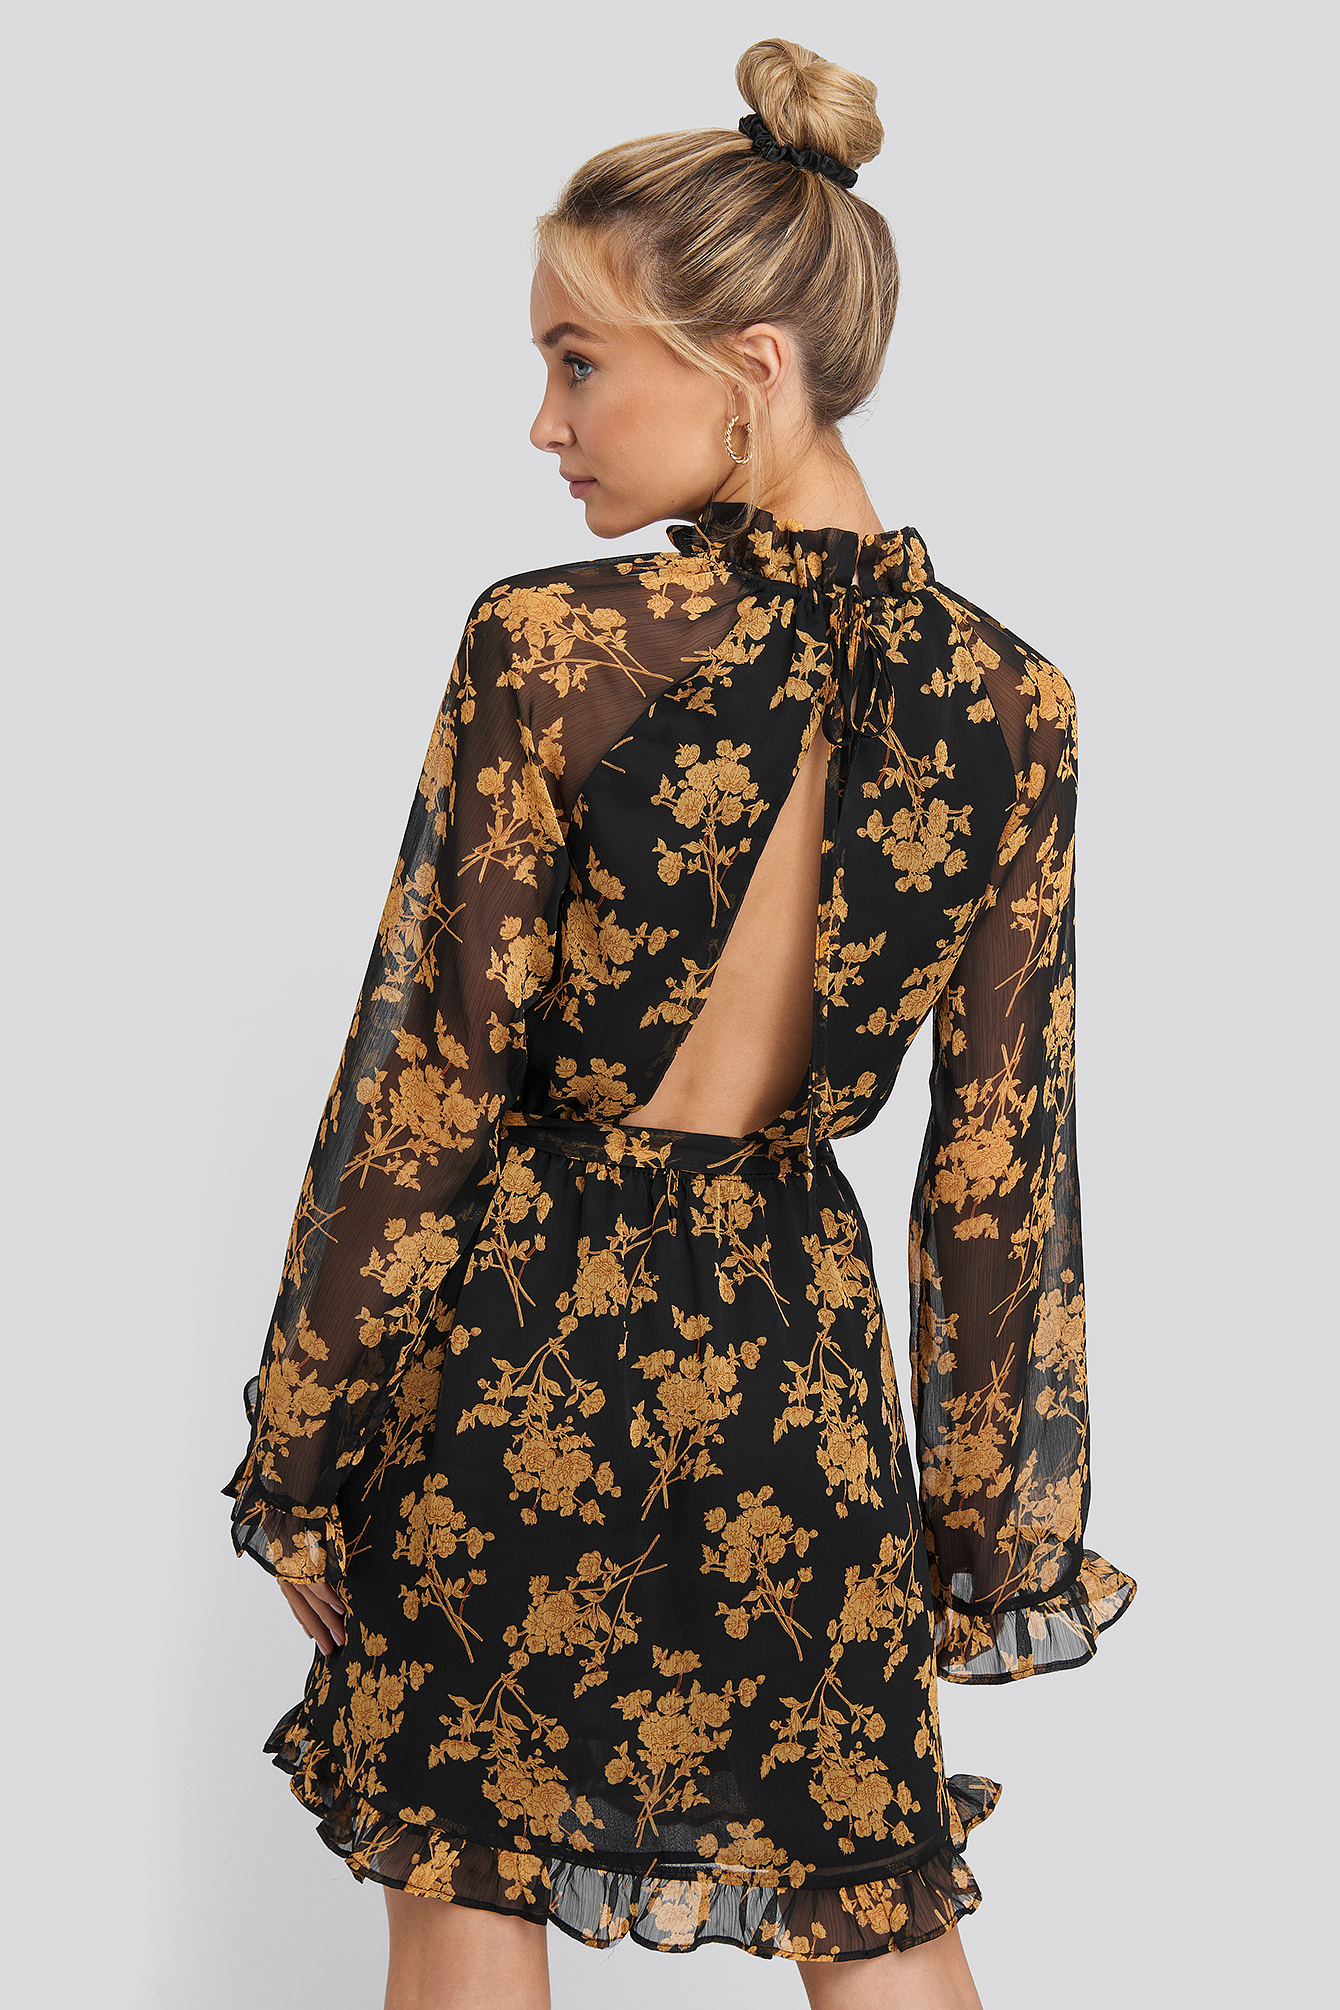 Flower Printed Open Back Mini Dress Mehrfarbig by Na Kd Boho